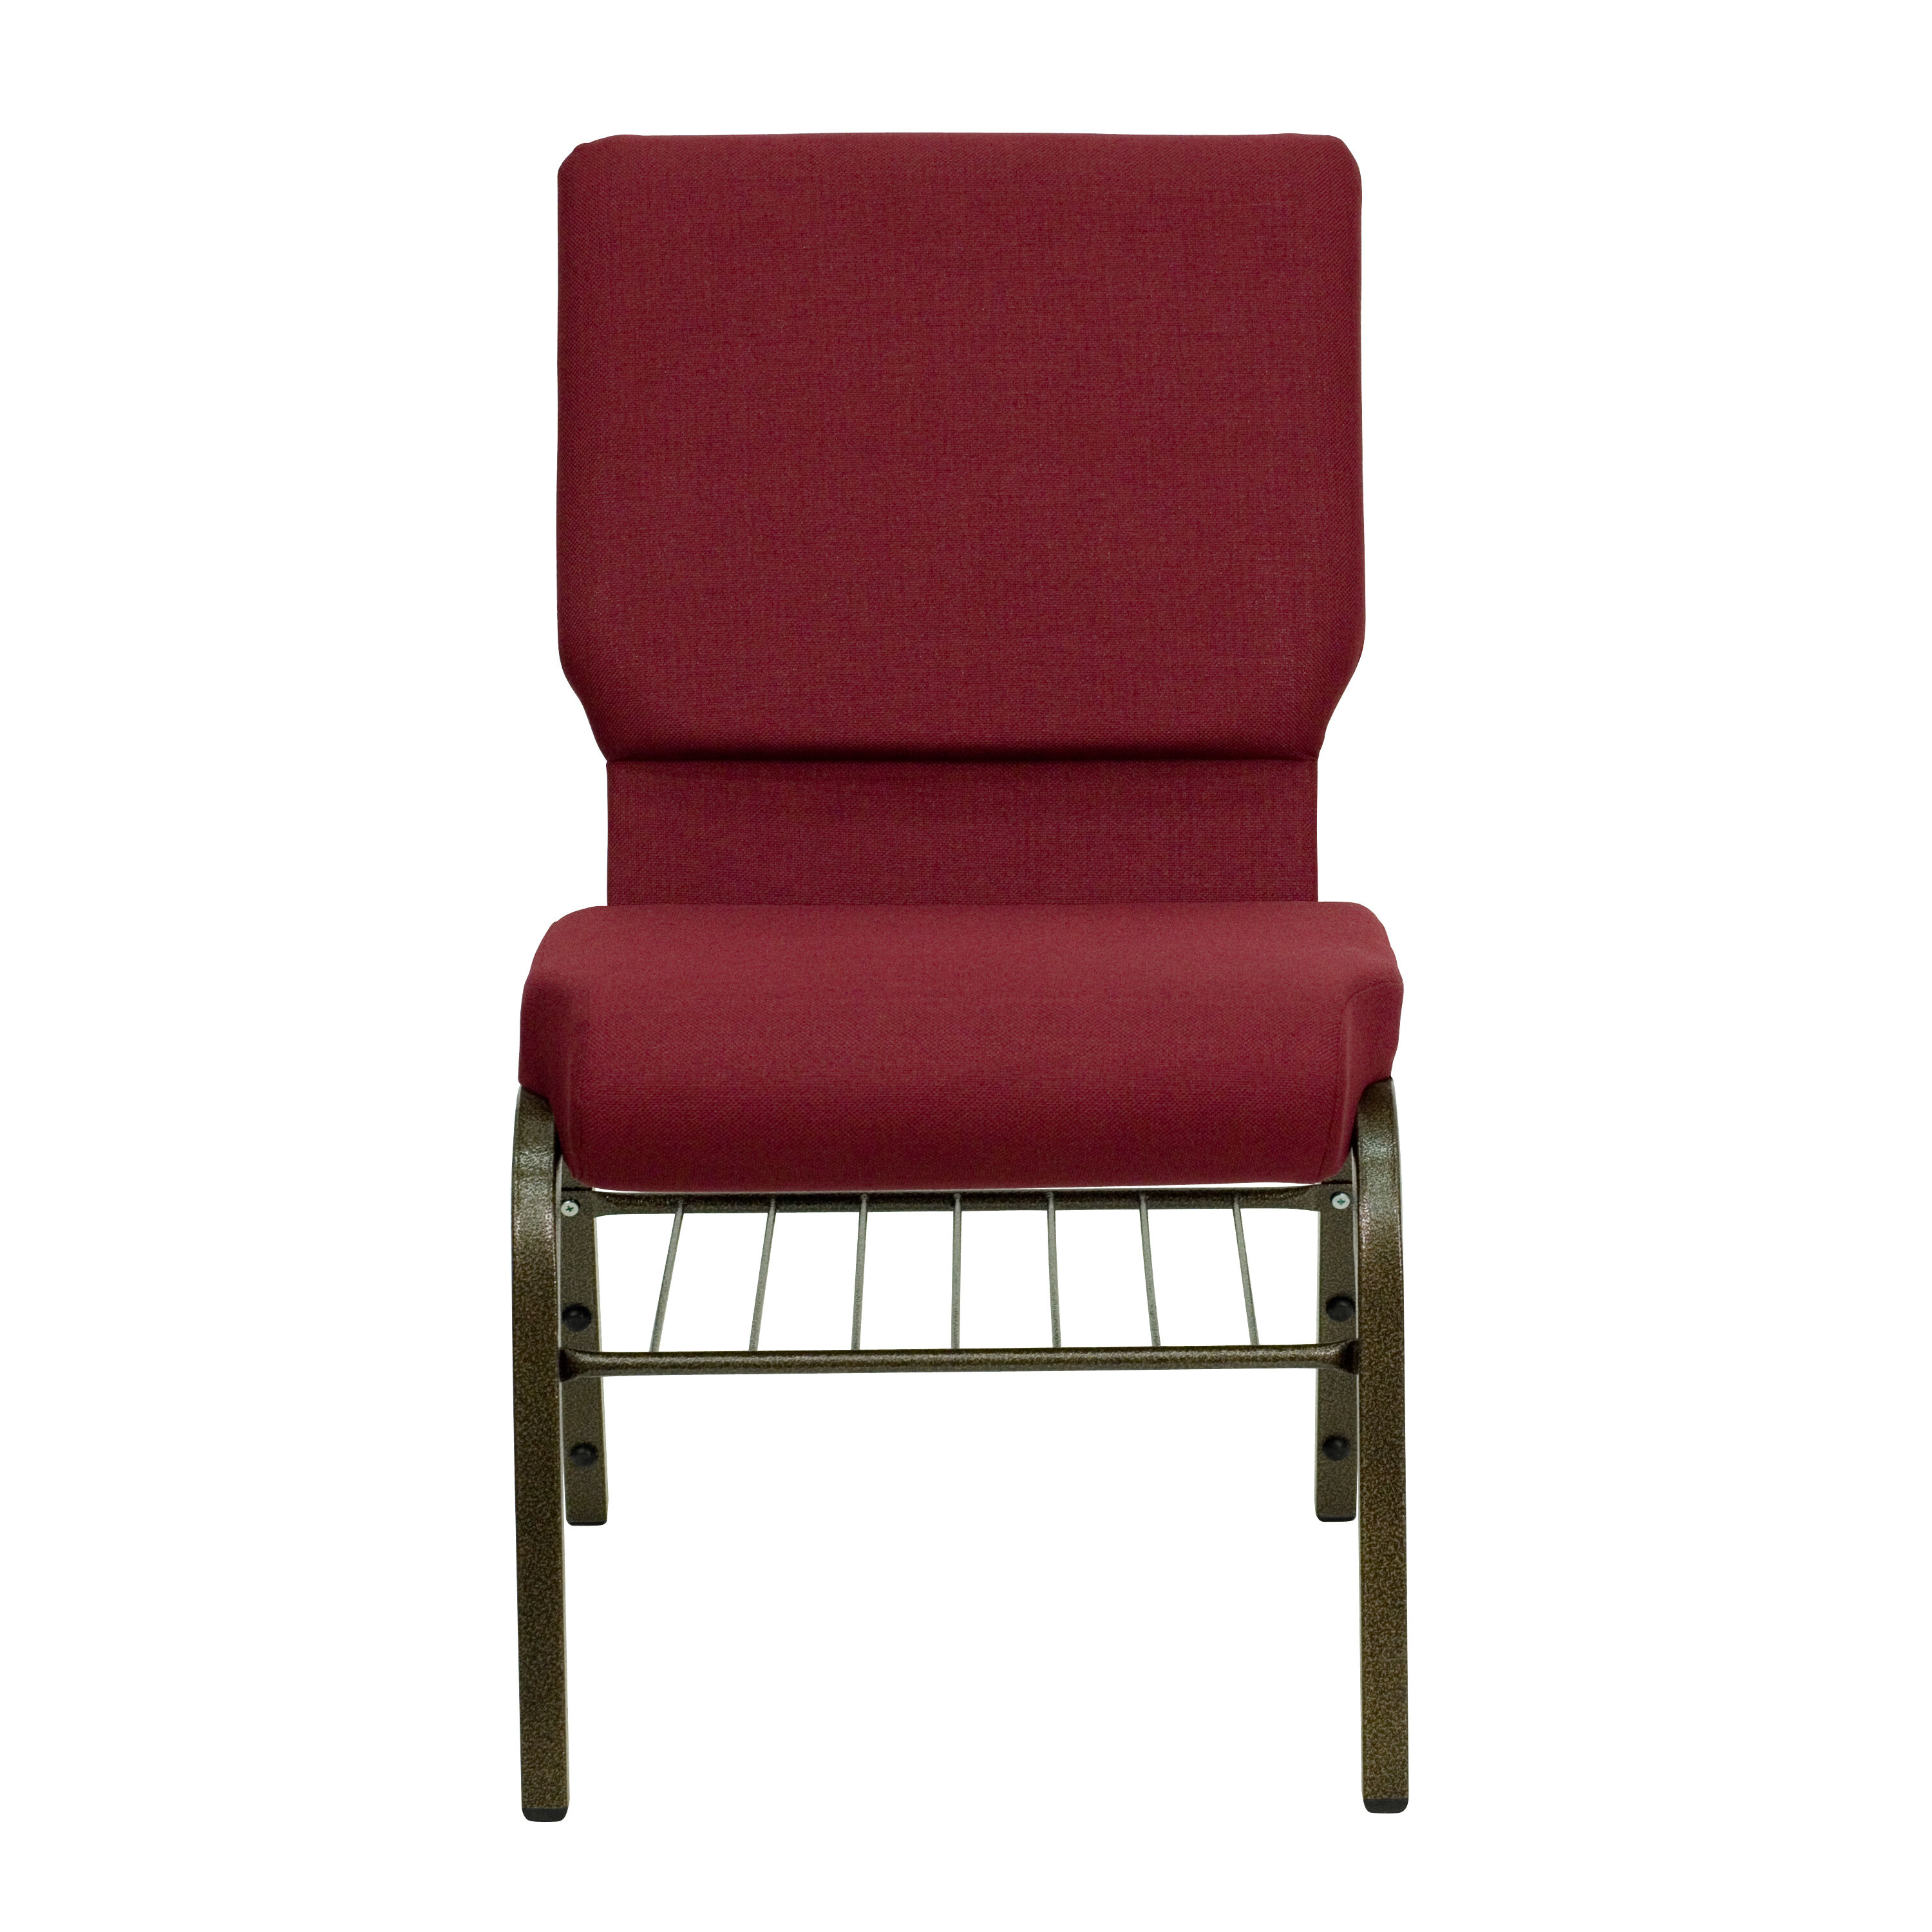 Merveilleux Burgundy Fabric Church Chair XU CH 60096 BY BAS GG | ChurchChairs4Less.com